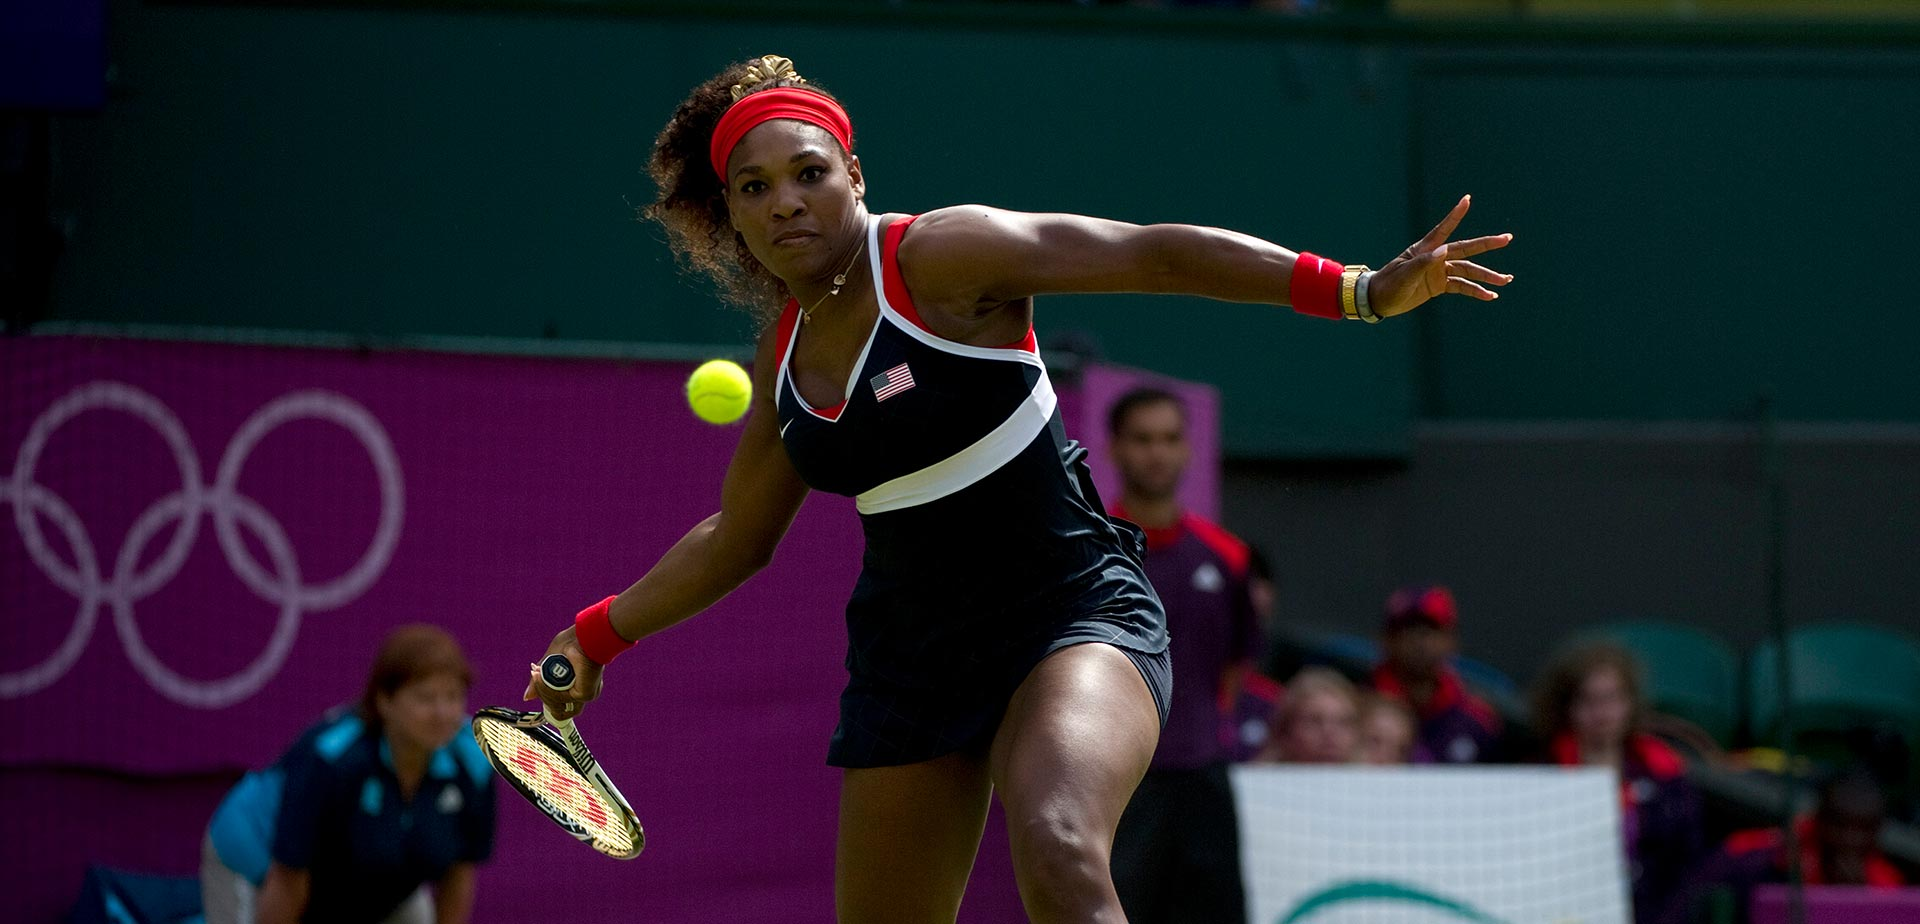 Courting Style: Women's Tennis Fashion